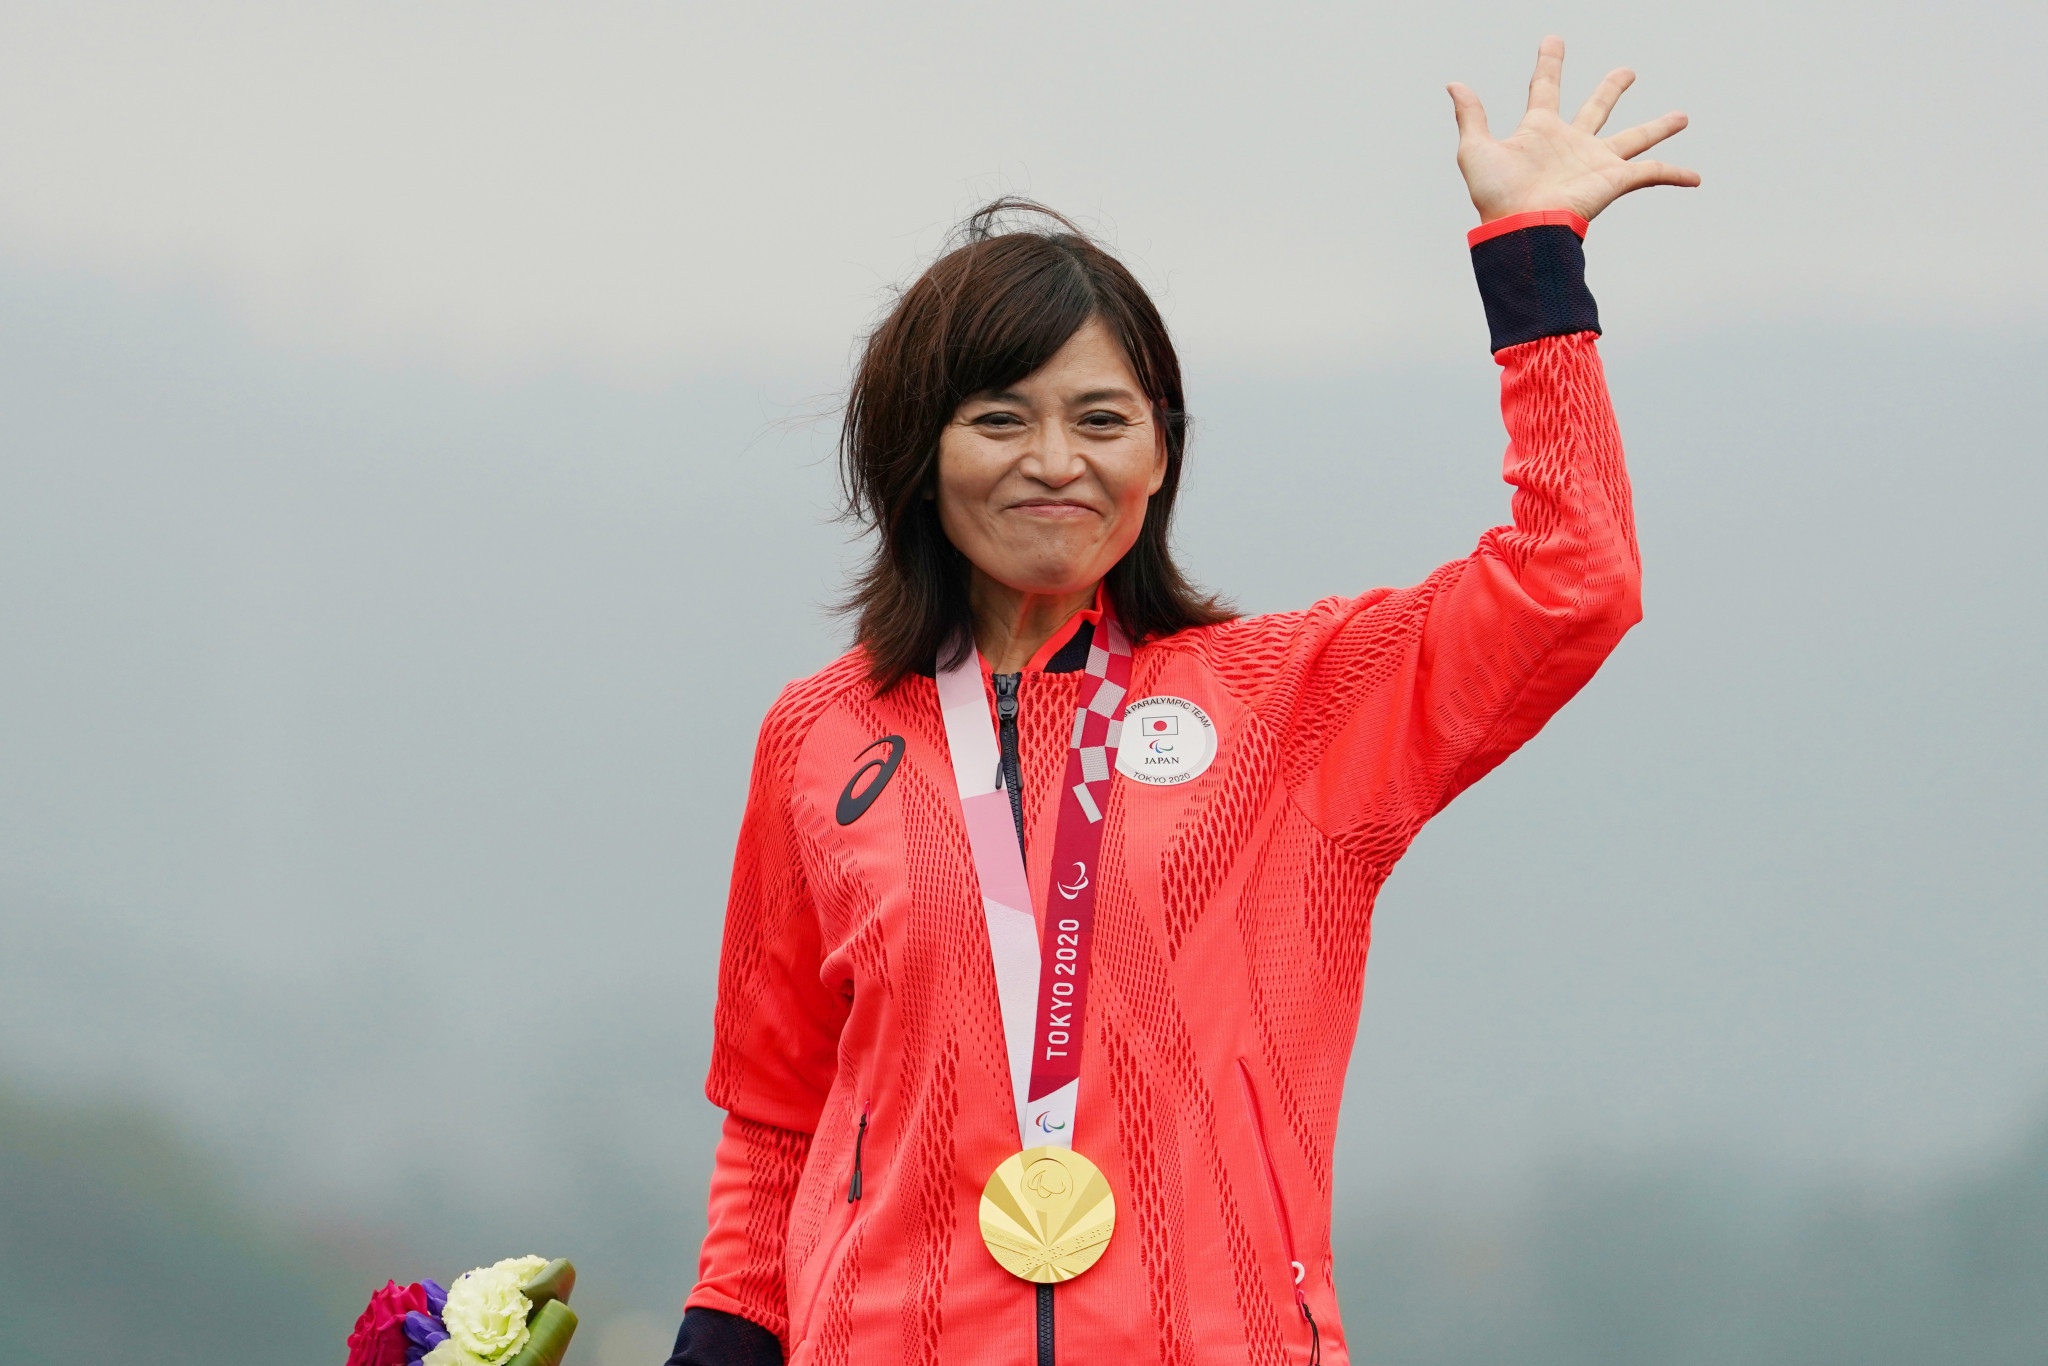 """Sugiura has """"mixed feelings"""" over double cycling gold due to COVID crisis in Japan"""